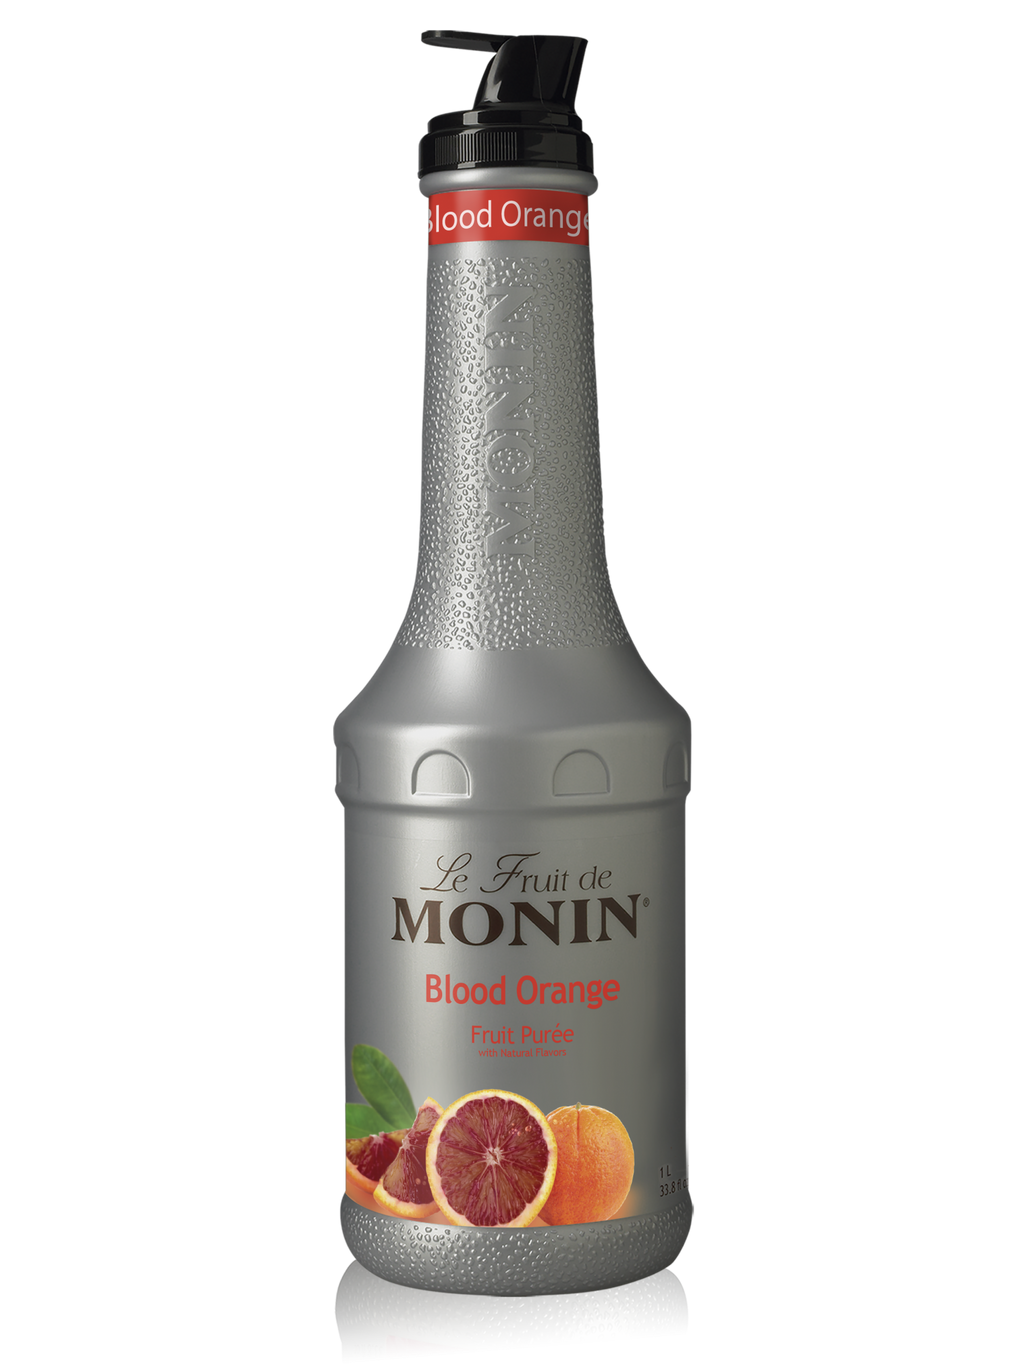 Monin Blood Orange Fruit Puree (1L) | Beanwise